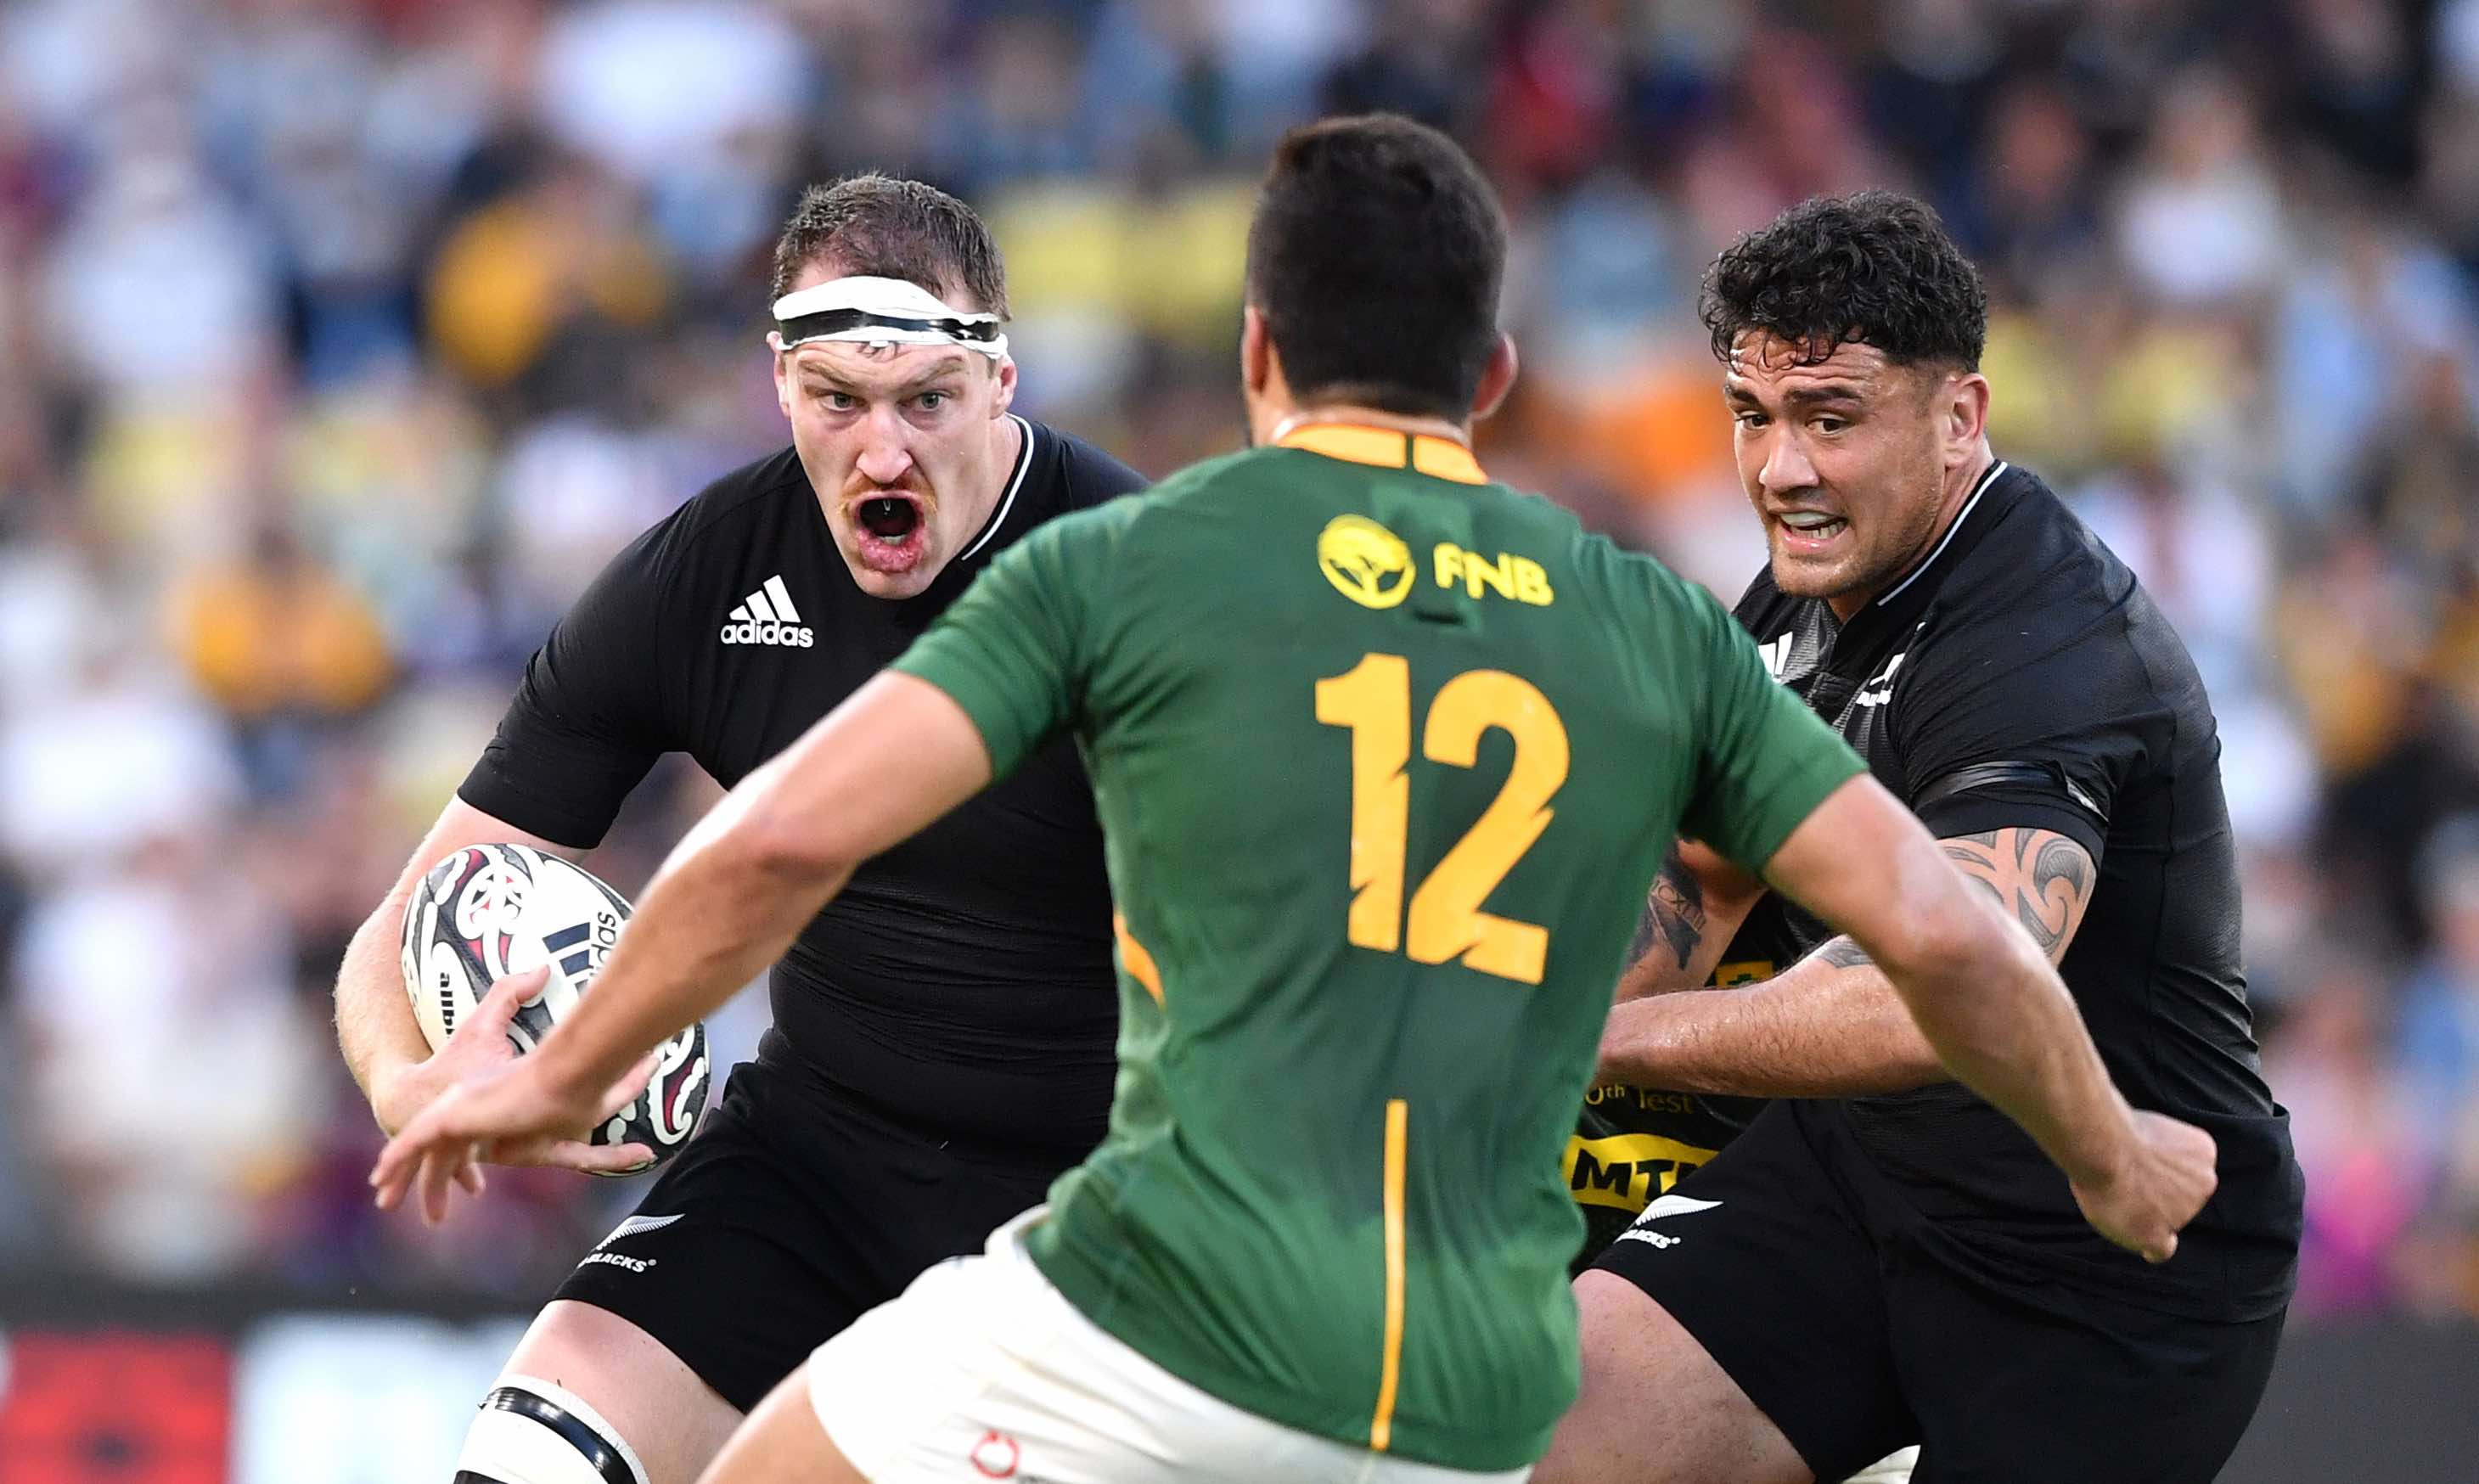 Retallick: Where it went wrong for All Blacks against Boks - SARugbymag